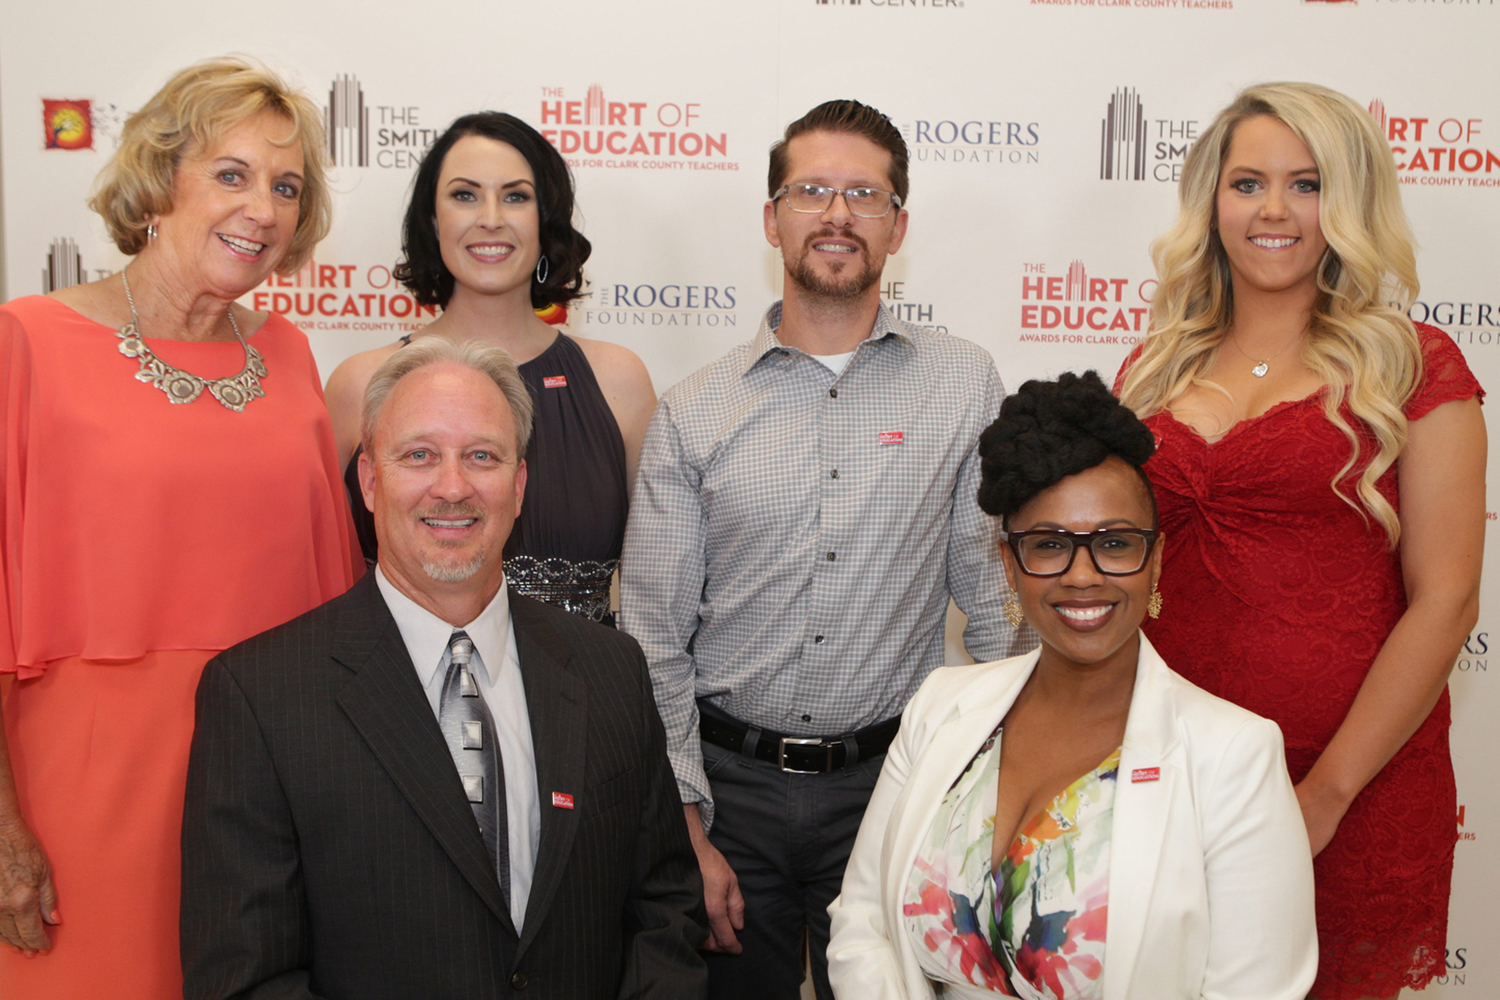 BWW Feature: HEART OF EDUCATION AWARDS at The Smith Center For The Performing Arts